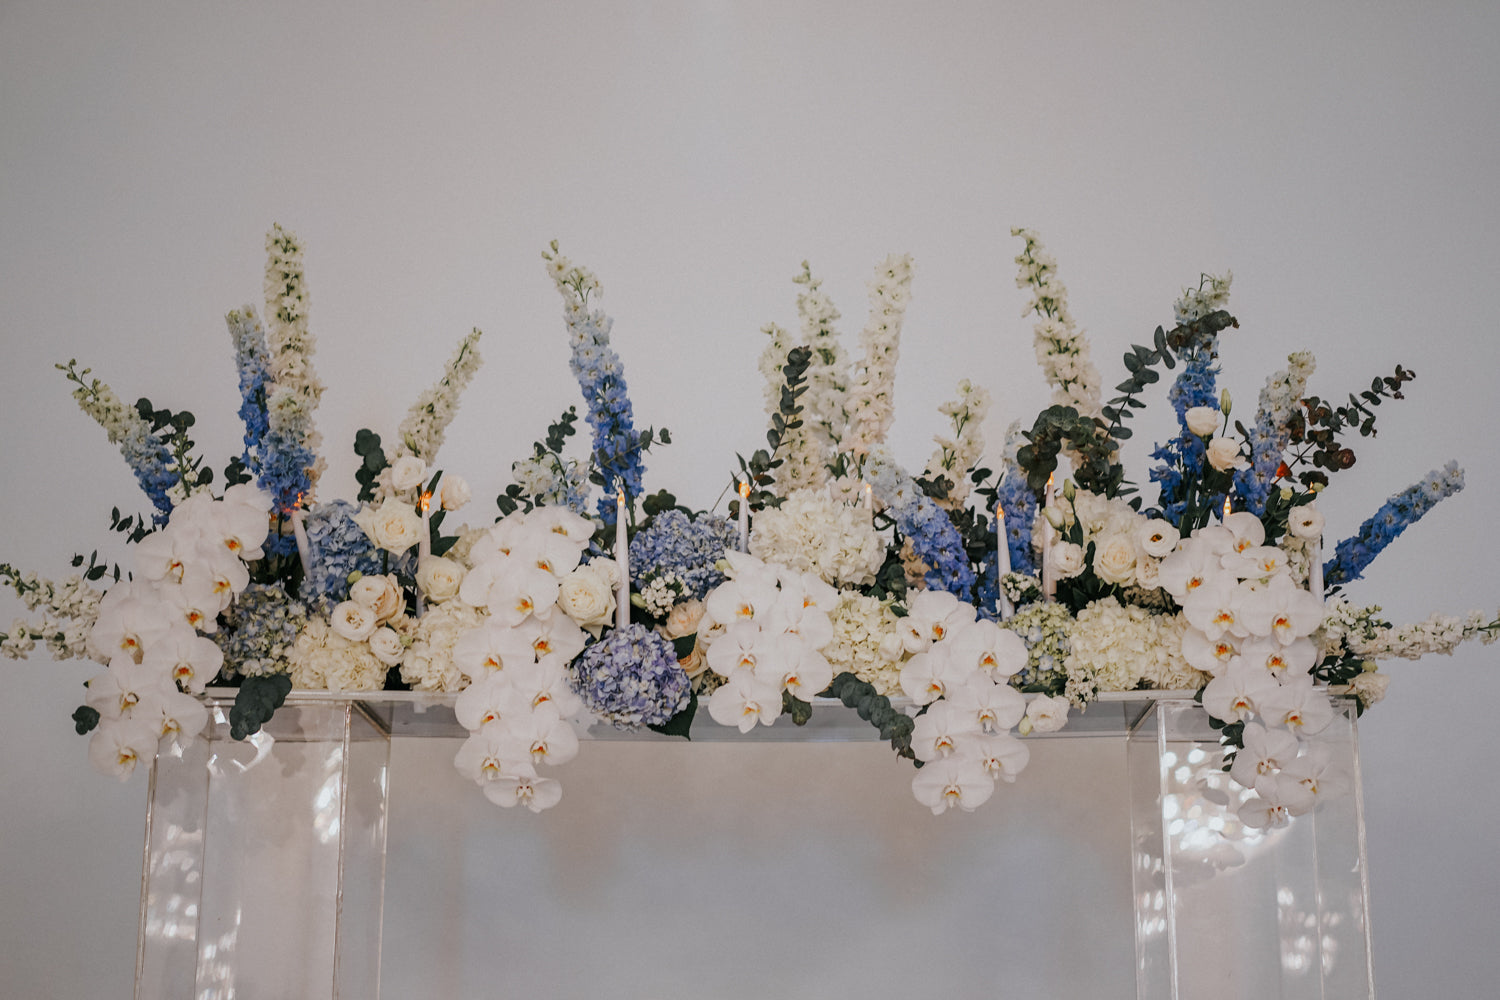 Styled orchids, hydrangeas, delphiniums, and buttercups in white and shades of blue atop acrylic stands for CHIJMES weddings